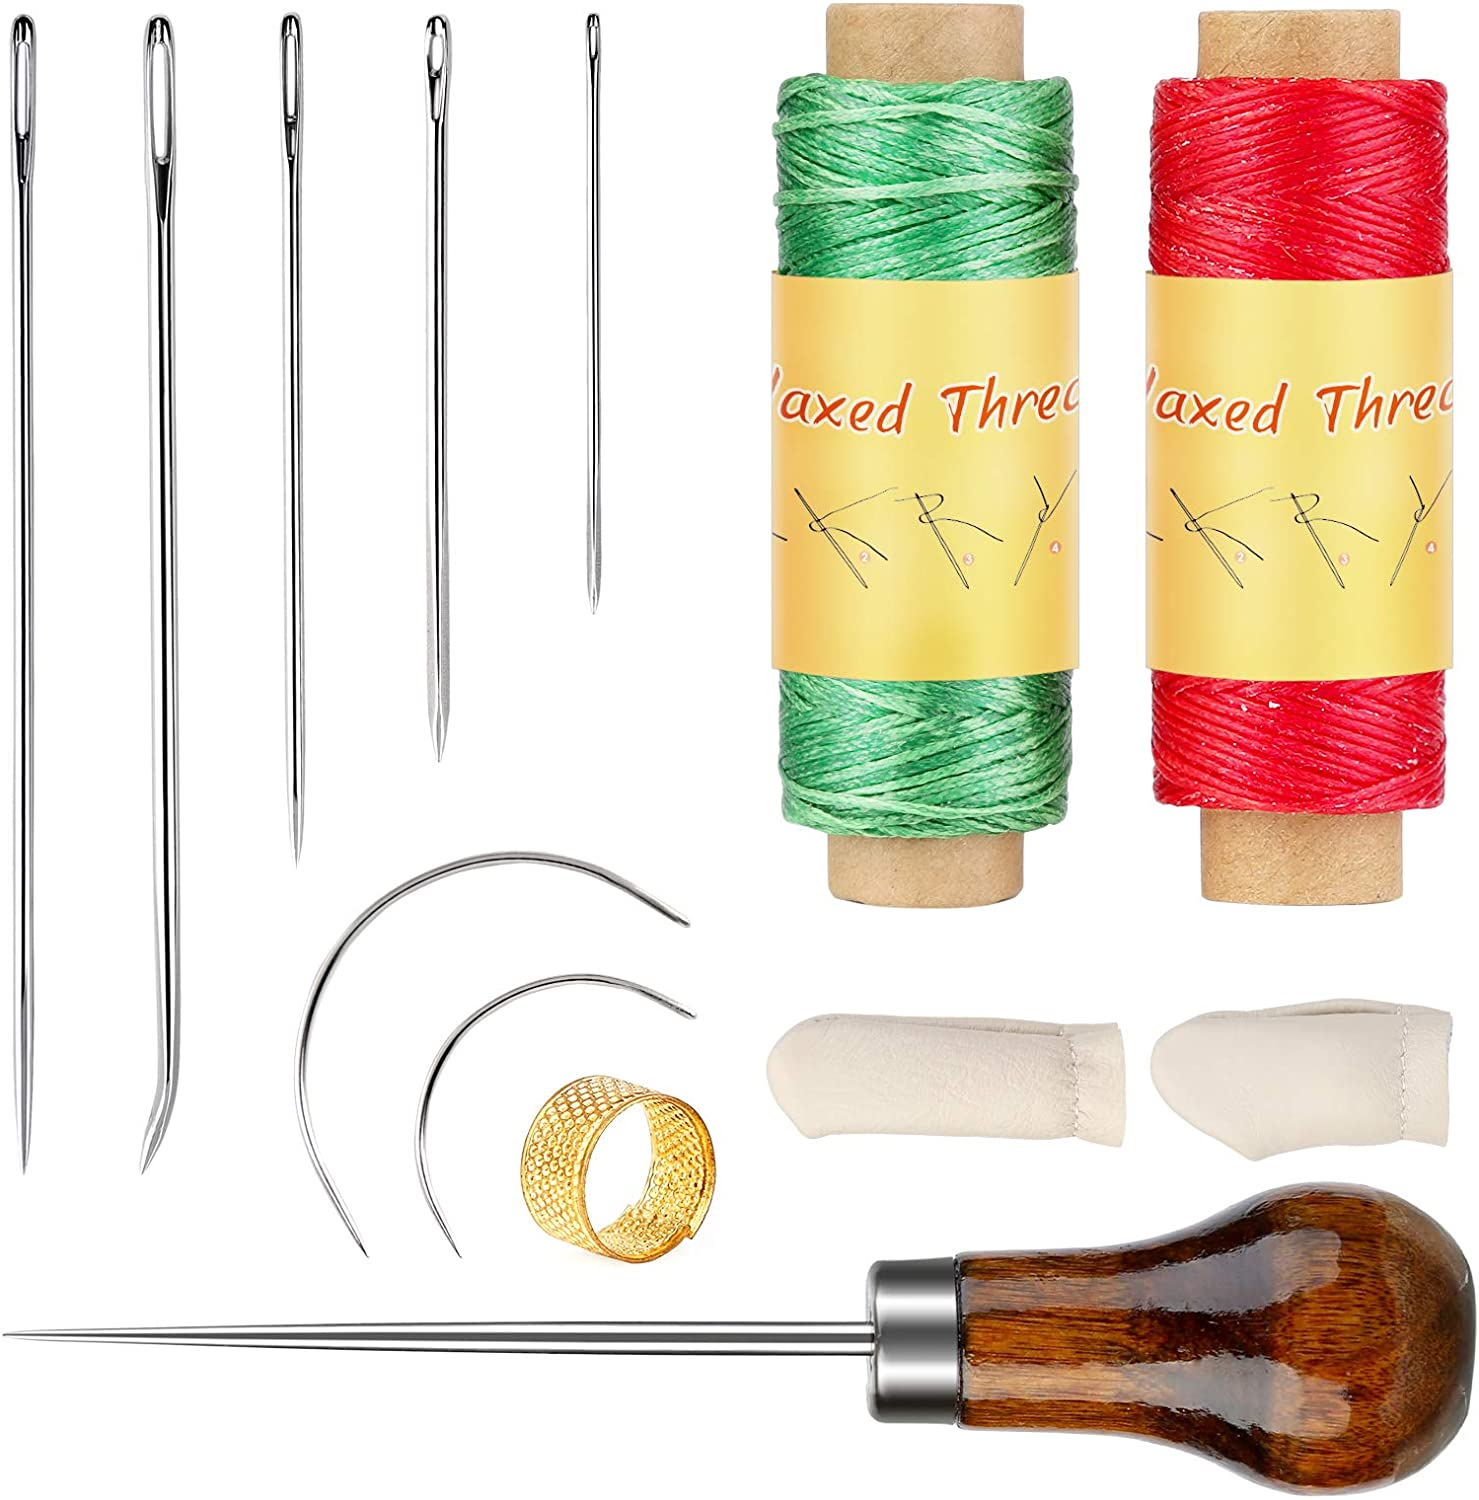 BUTUZE outlet Leather Sewing Kit Upholstery R Waxed Thread Needle and Ranking TOP6